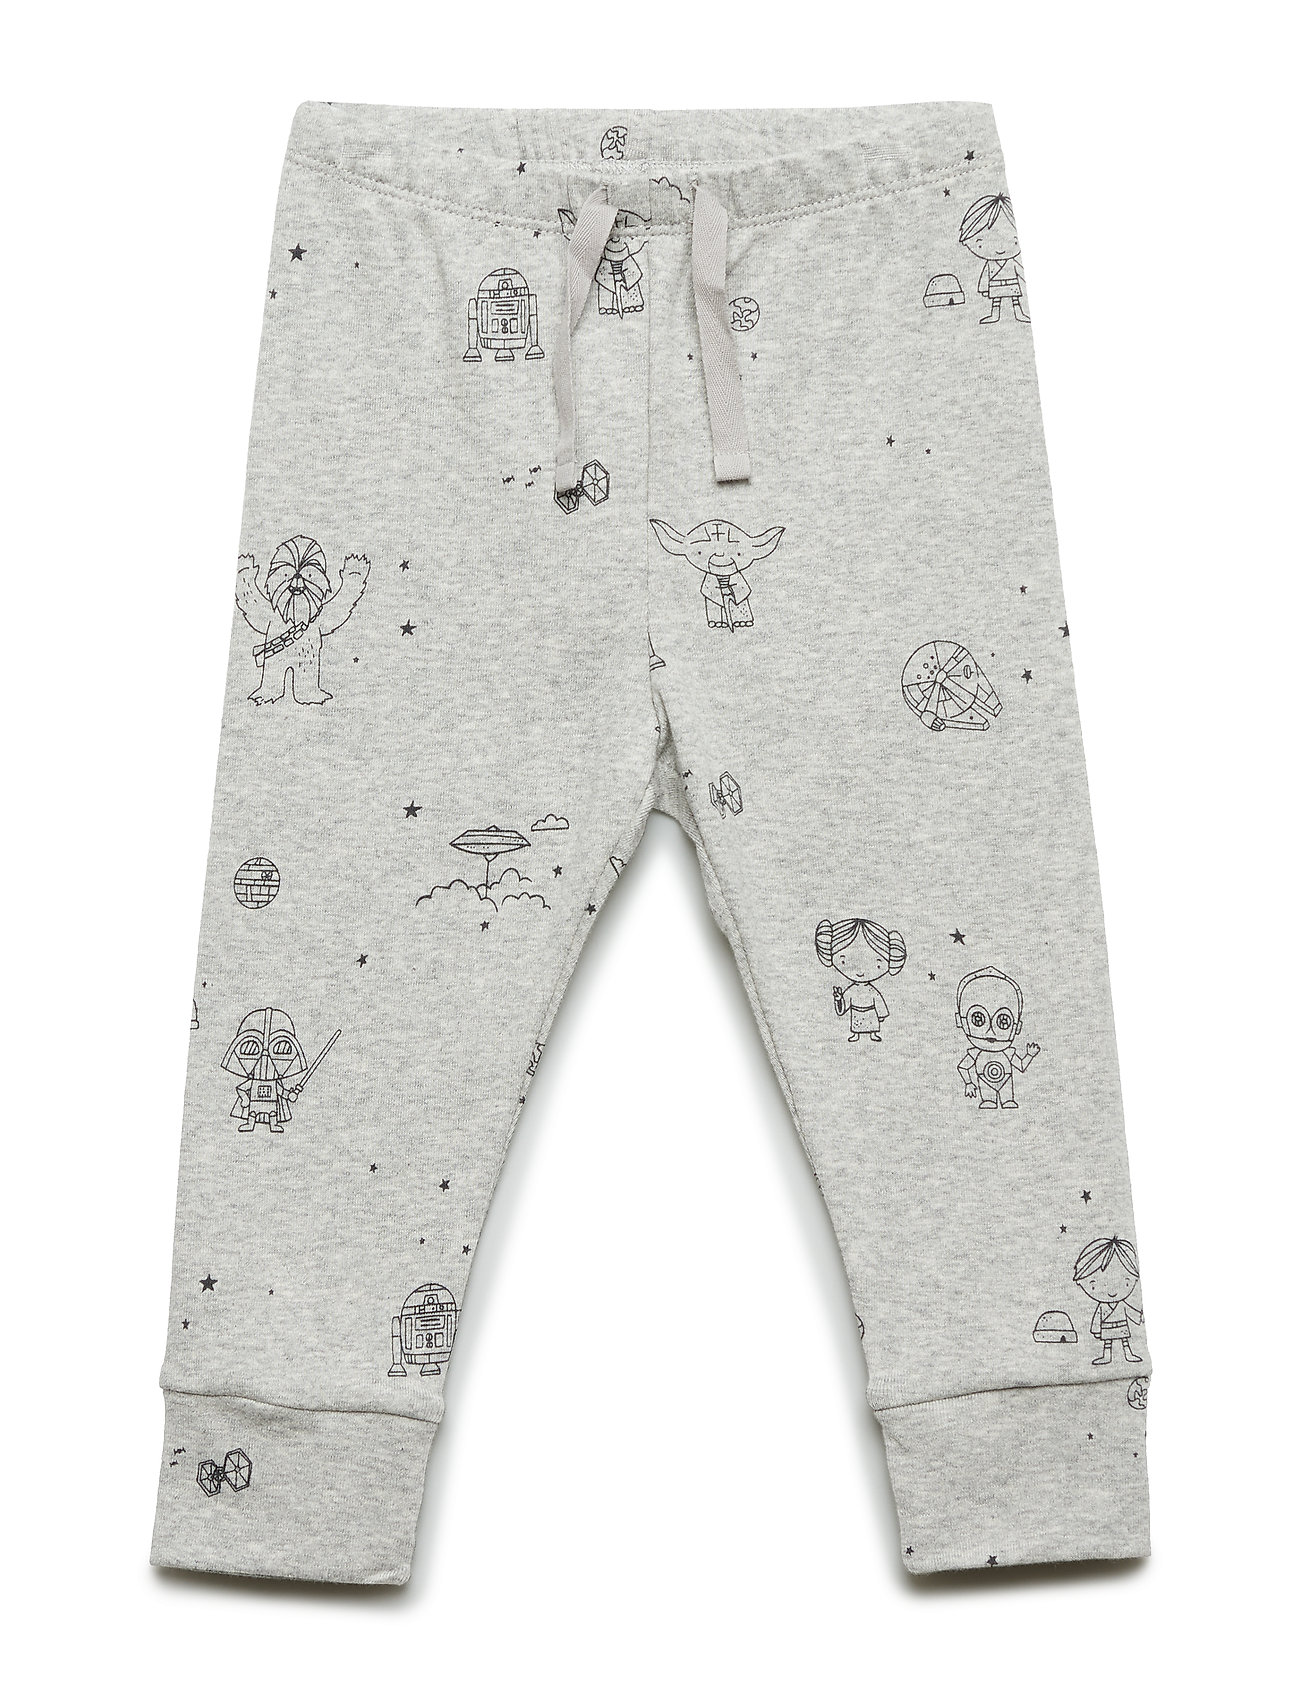 GAP SW 2PK PNT - FLINT GREY